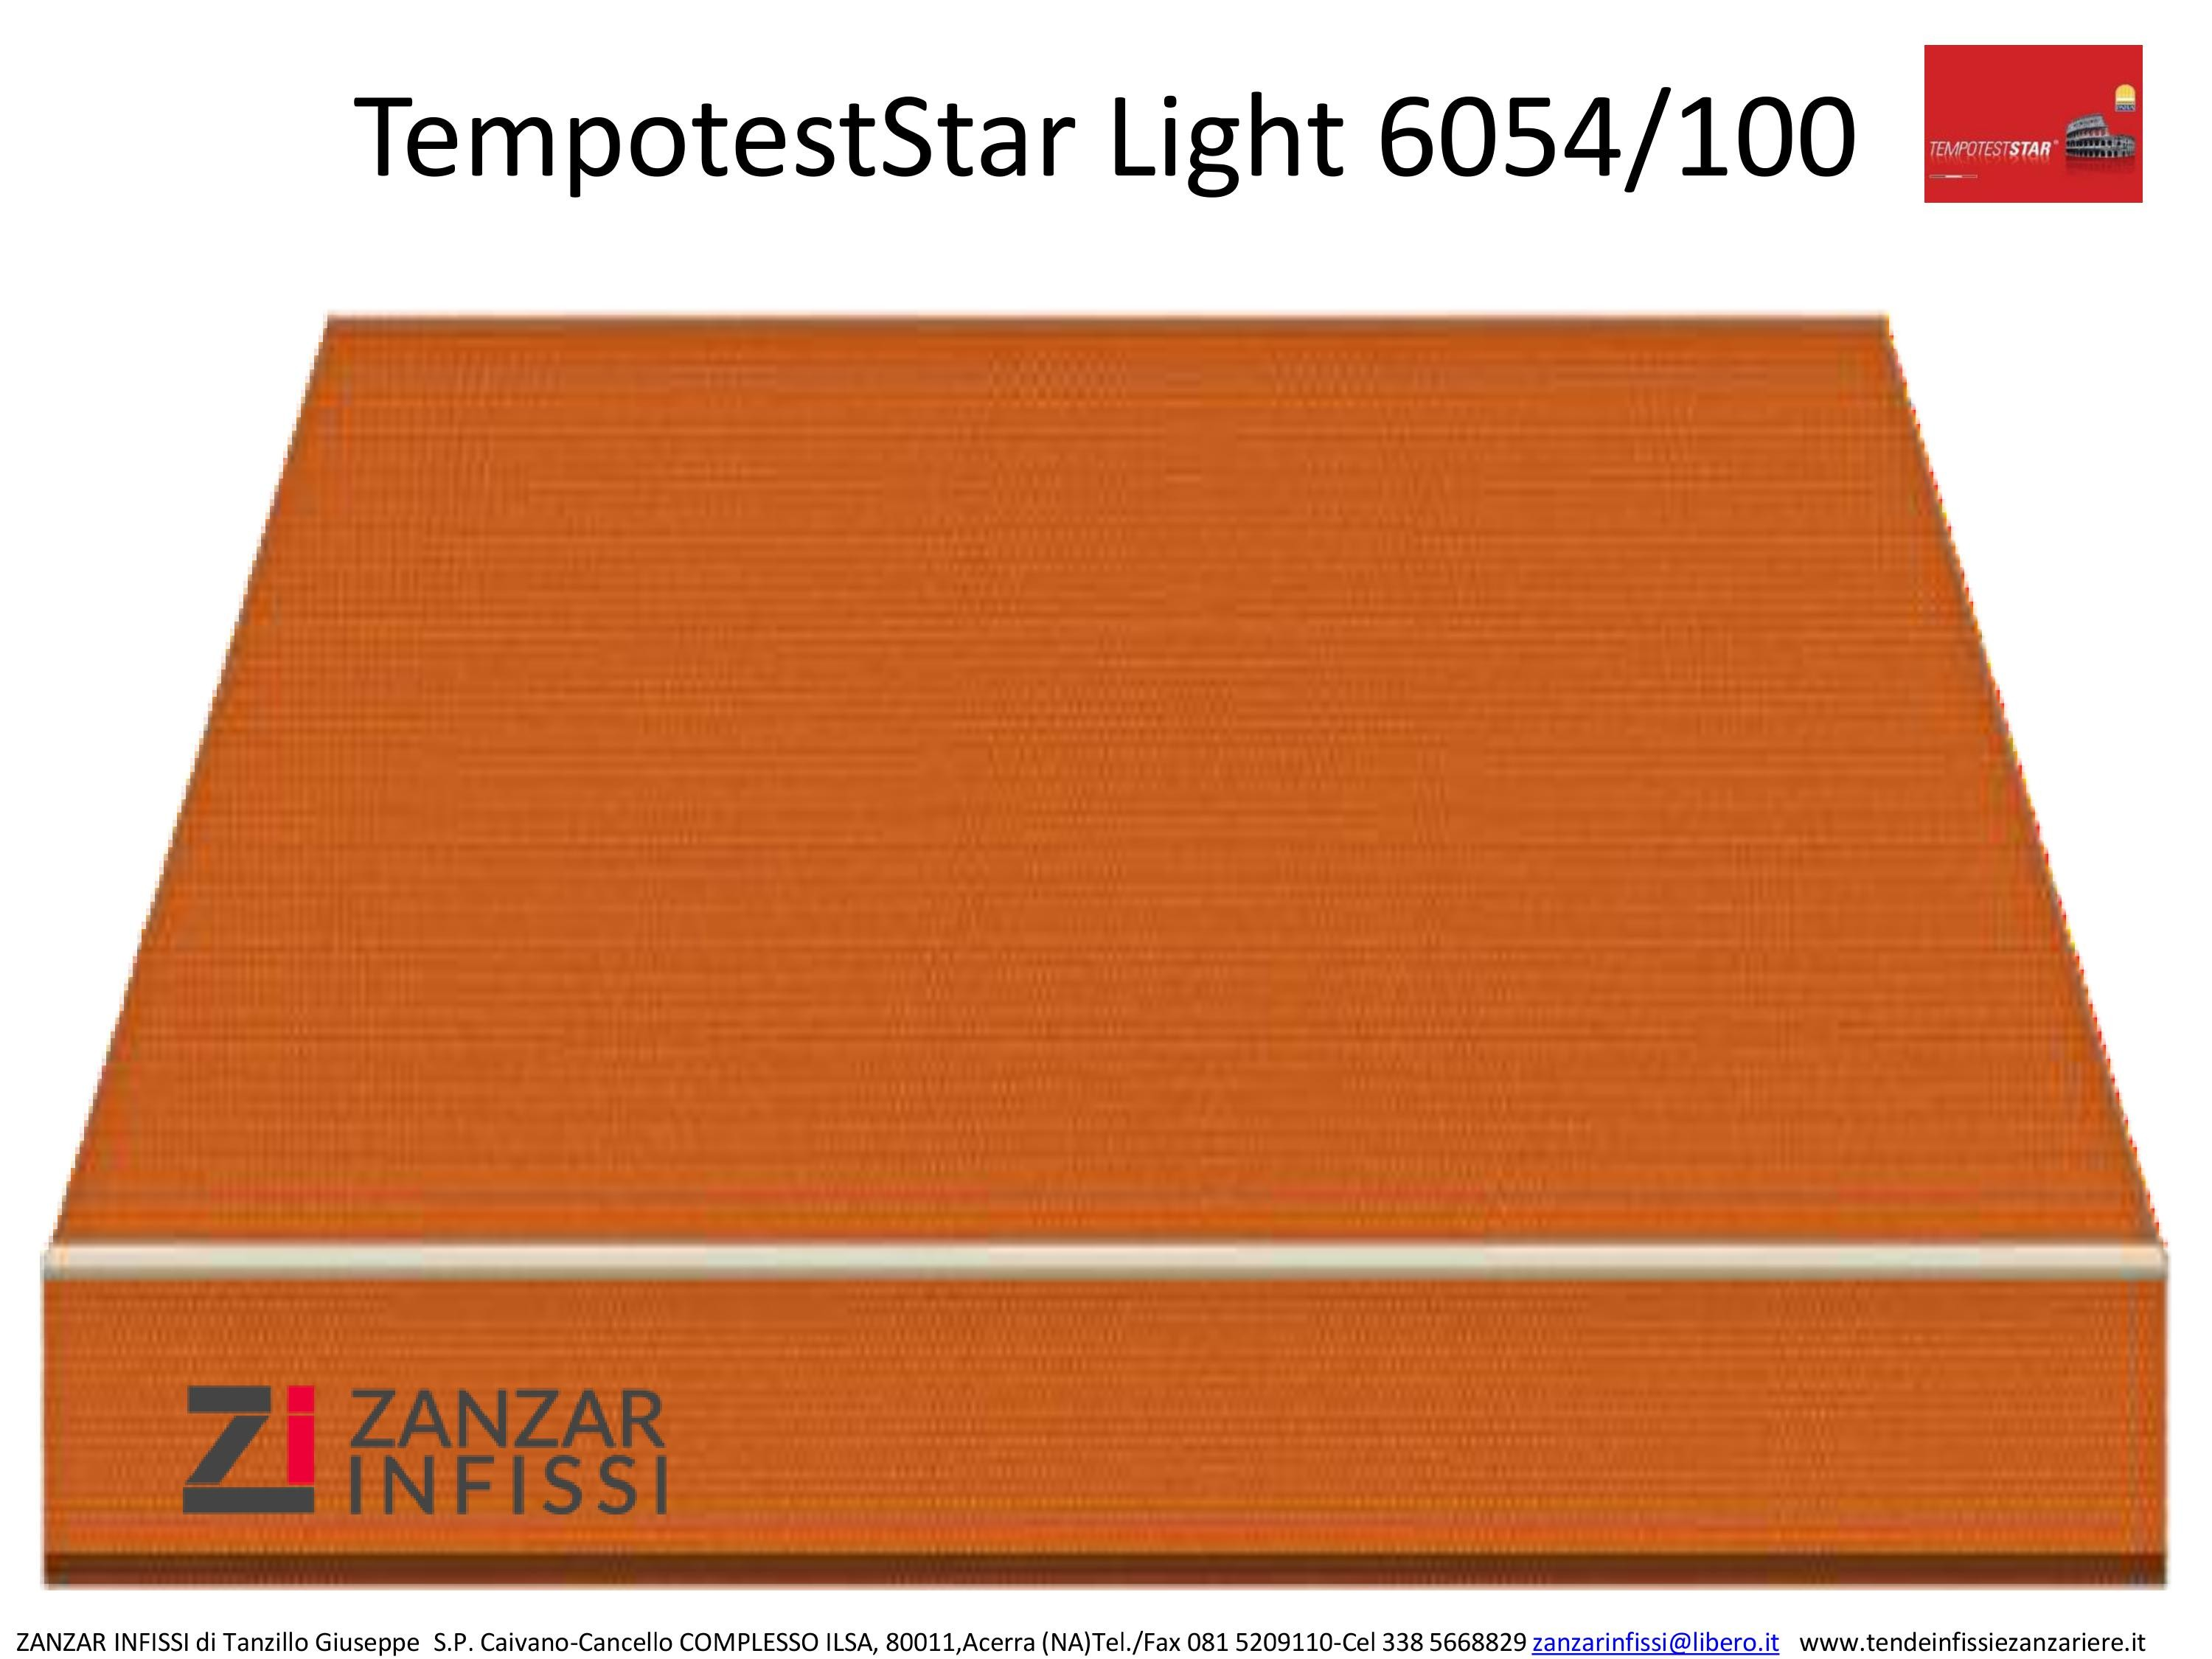 Tempotest star light 6054/100